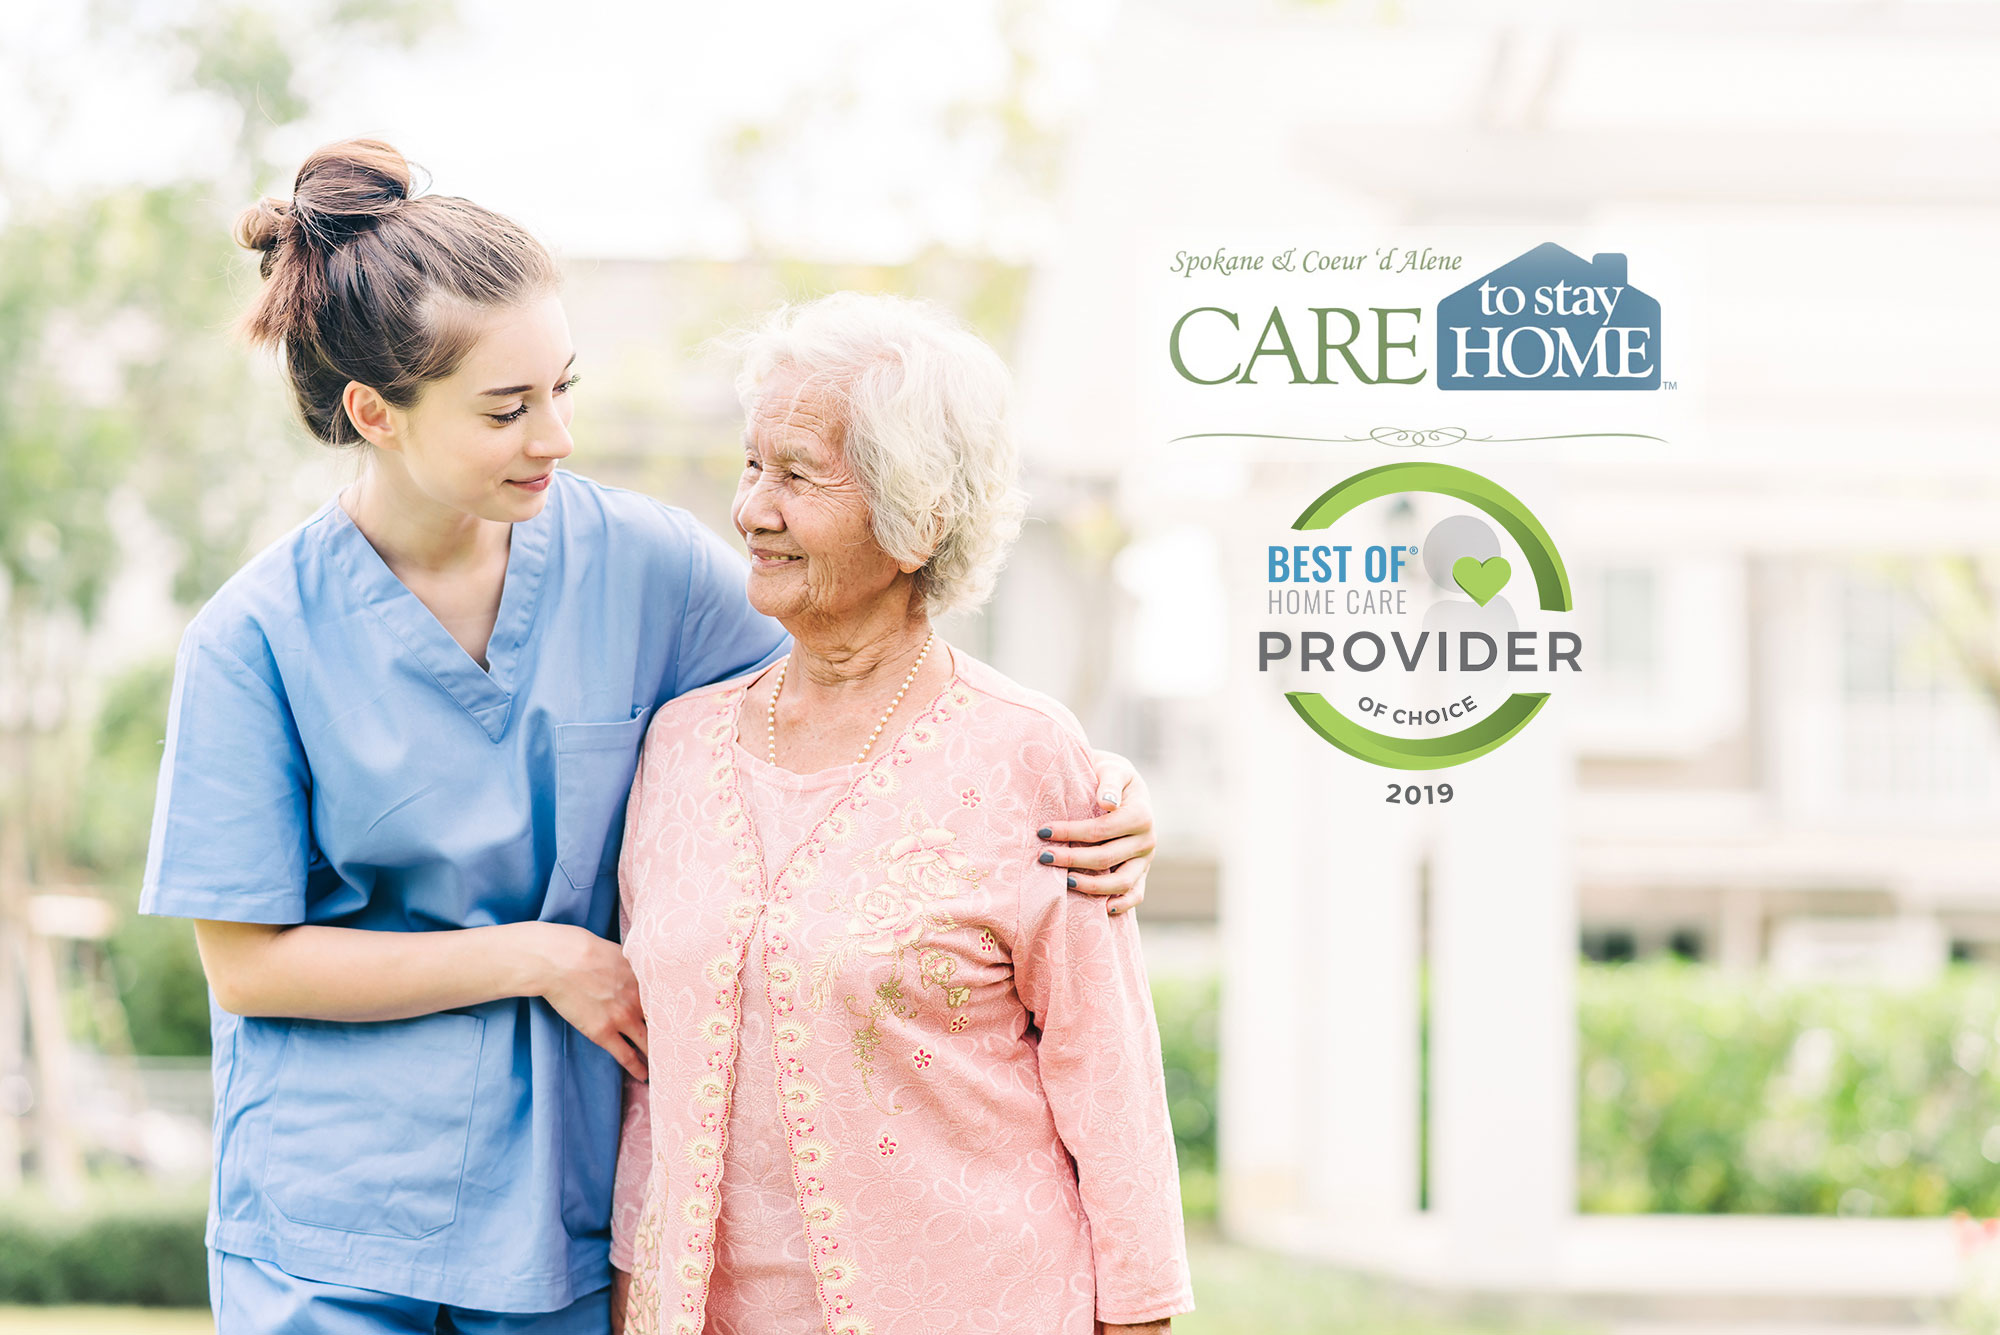 Care to Stay Home of Spokane Receives 2019 Best of Home Care® – Provider of Choice Award